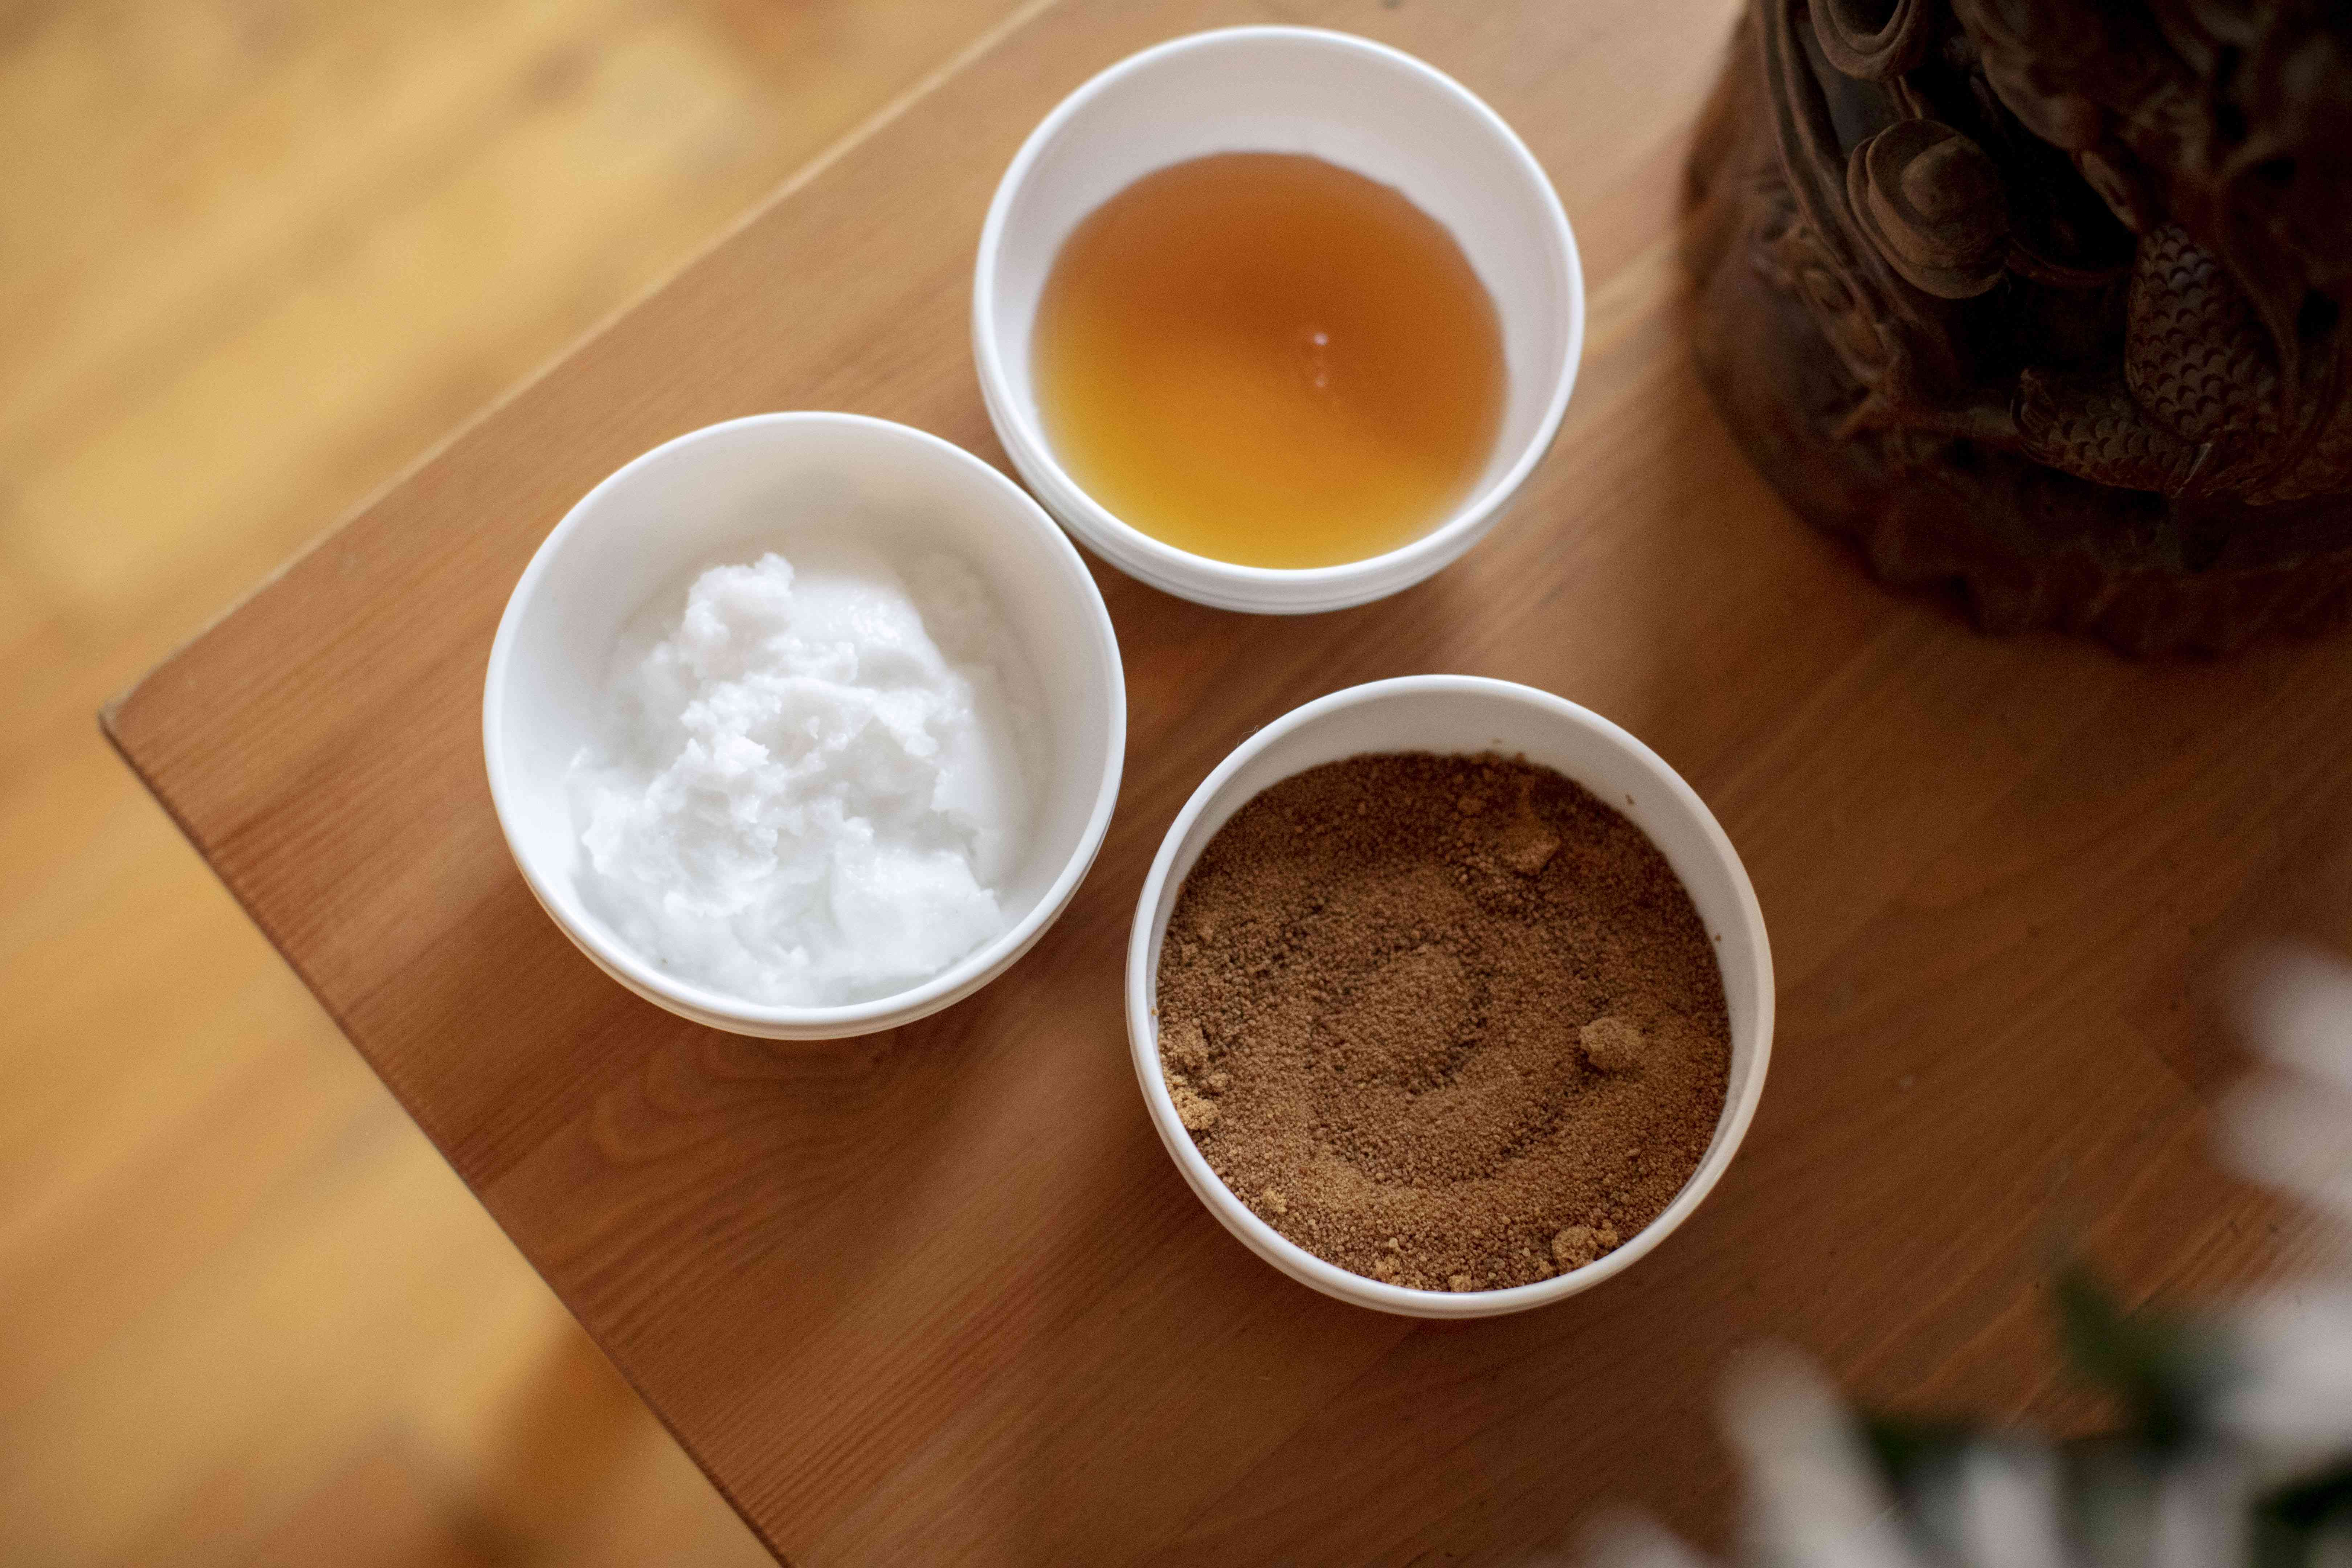 coconut sugar, coconut oil, and honey in white ceramic bowls on wooden table for diy lip scrub